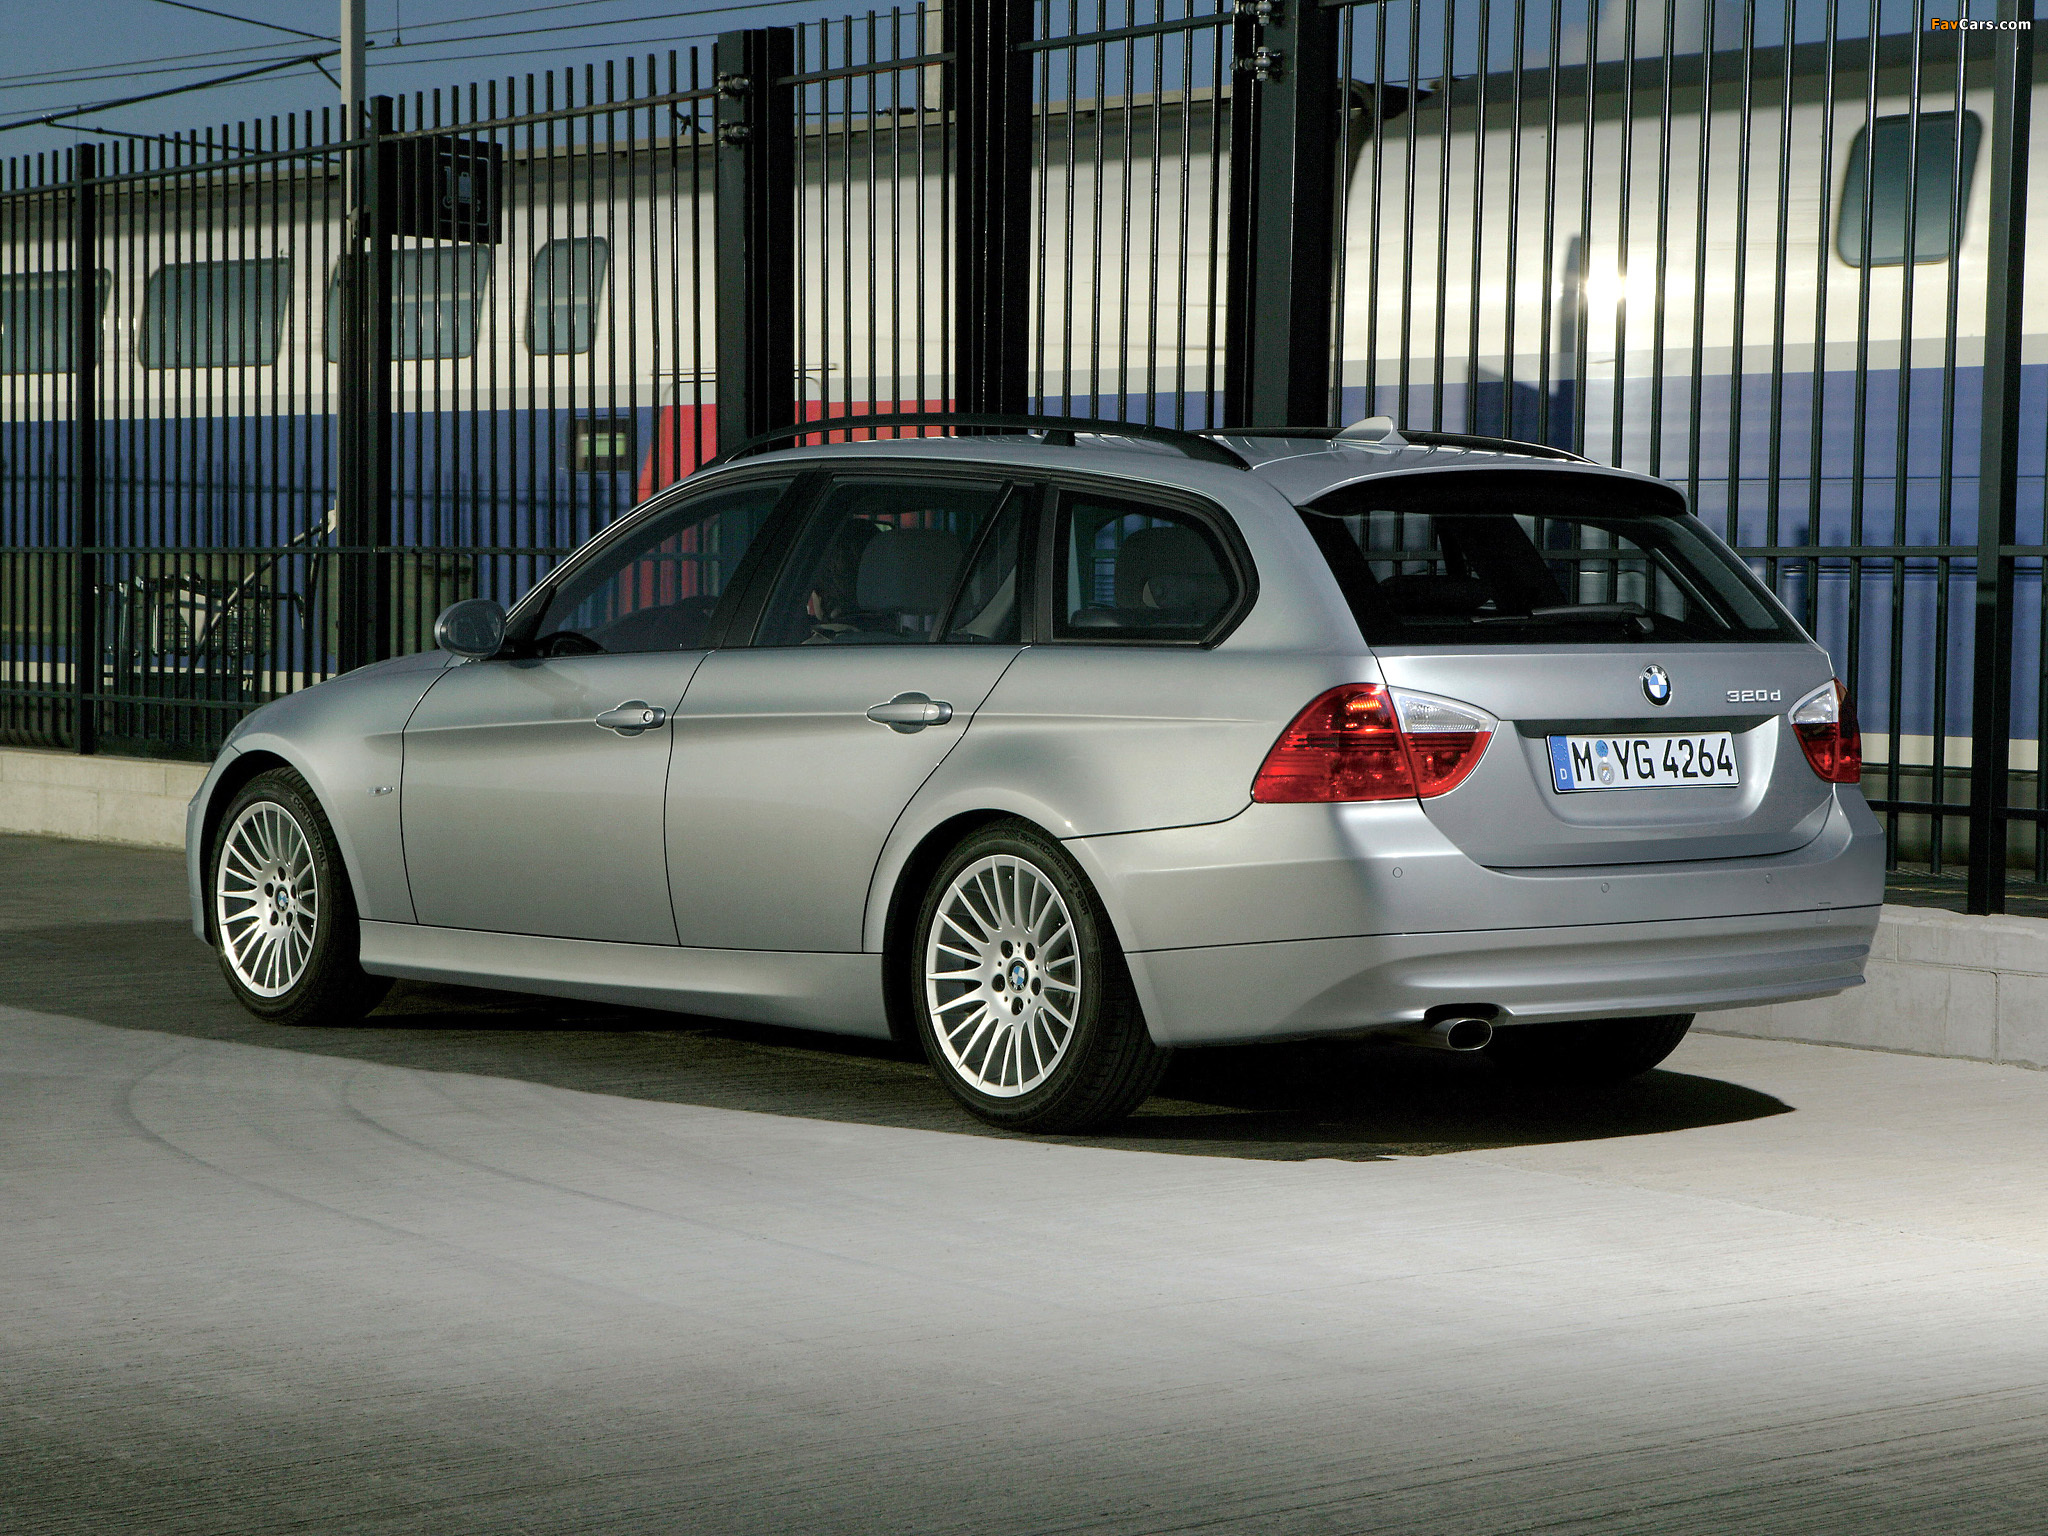 Wallpapers Of Bmw 320d Touring E91 2006 08 2048x1536